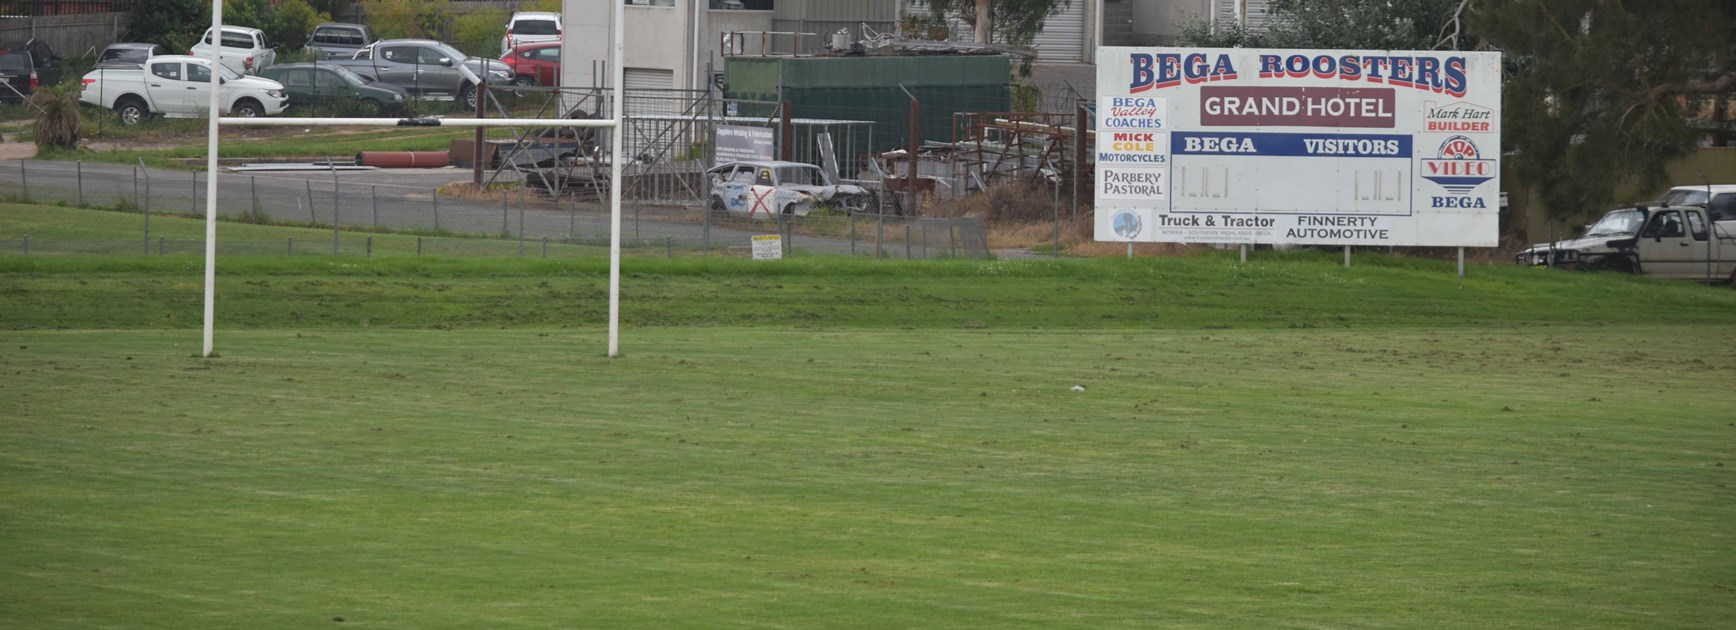 Raiders visited the Bega Recreation Ground on Thursday to discuss a possible trial in 2019.